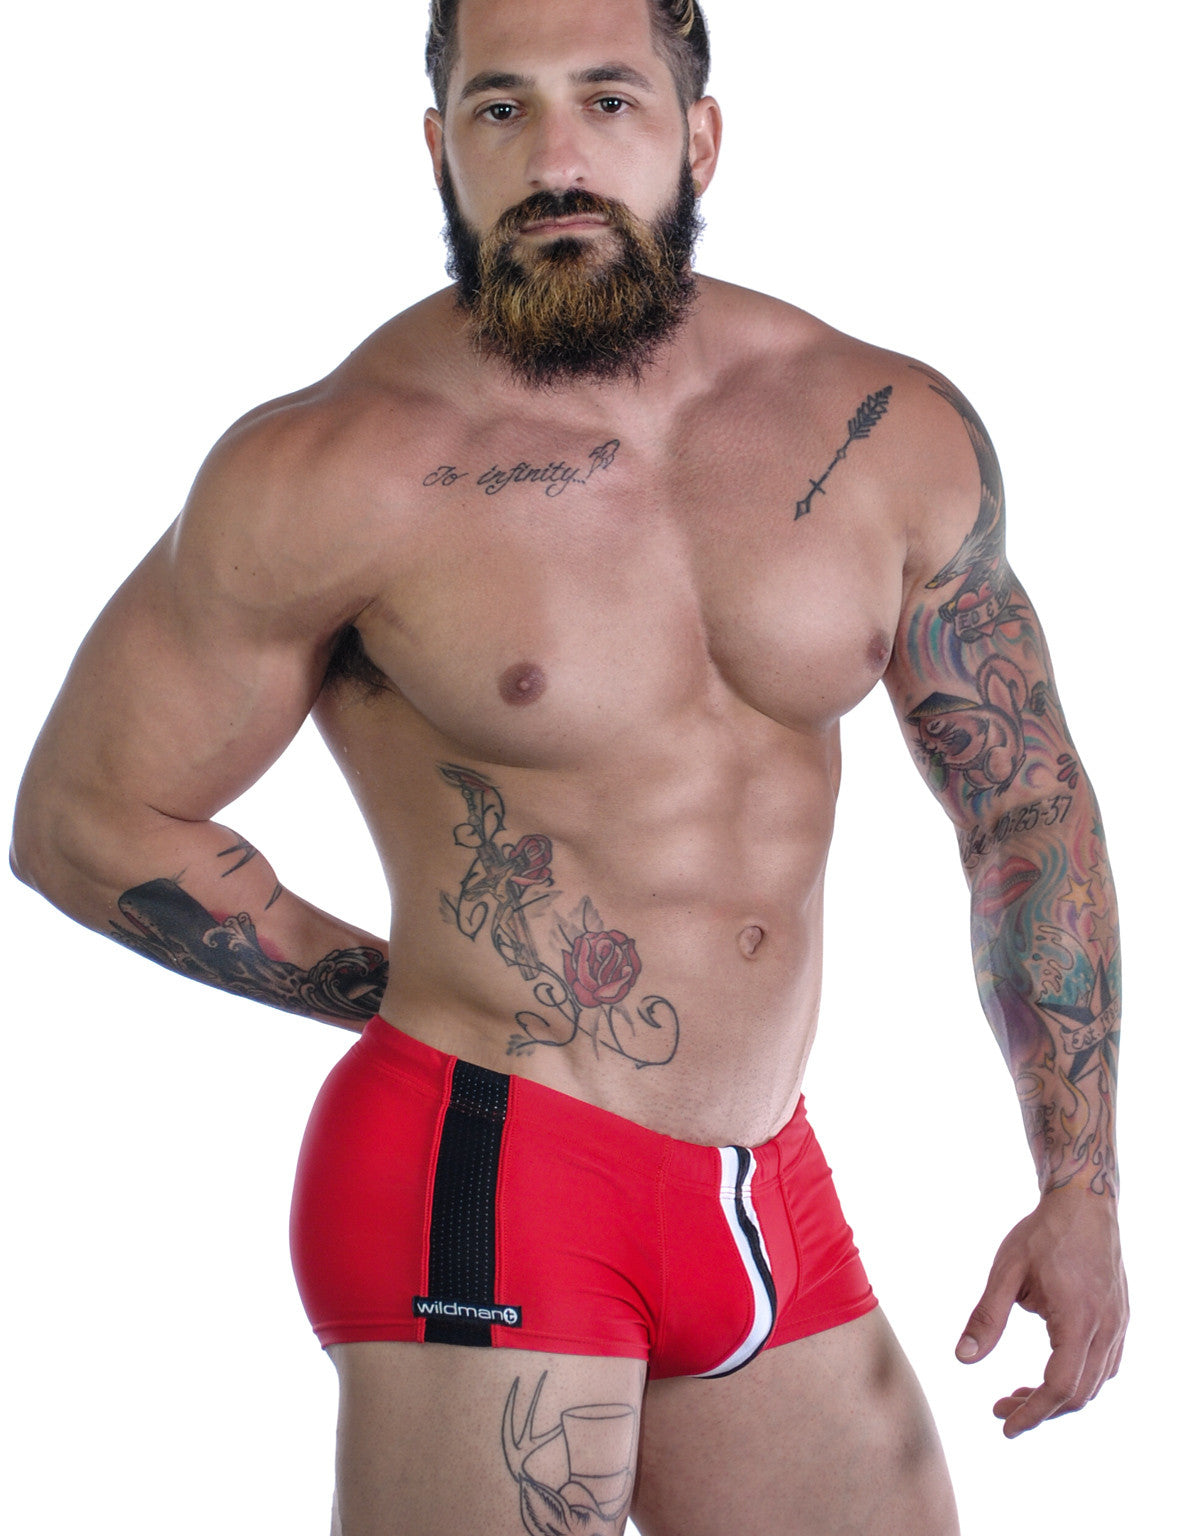 Sportivo Square Cut Red - Big Penis Underwear, WildmanT - WildmanT